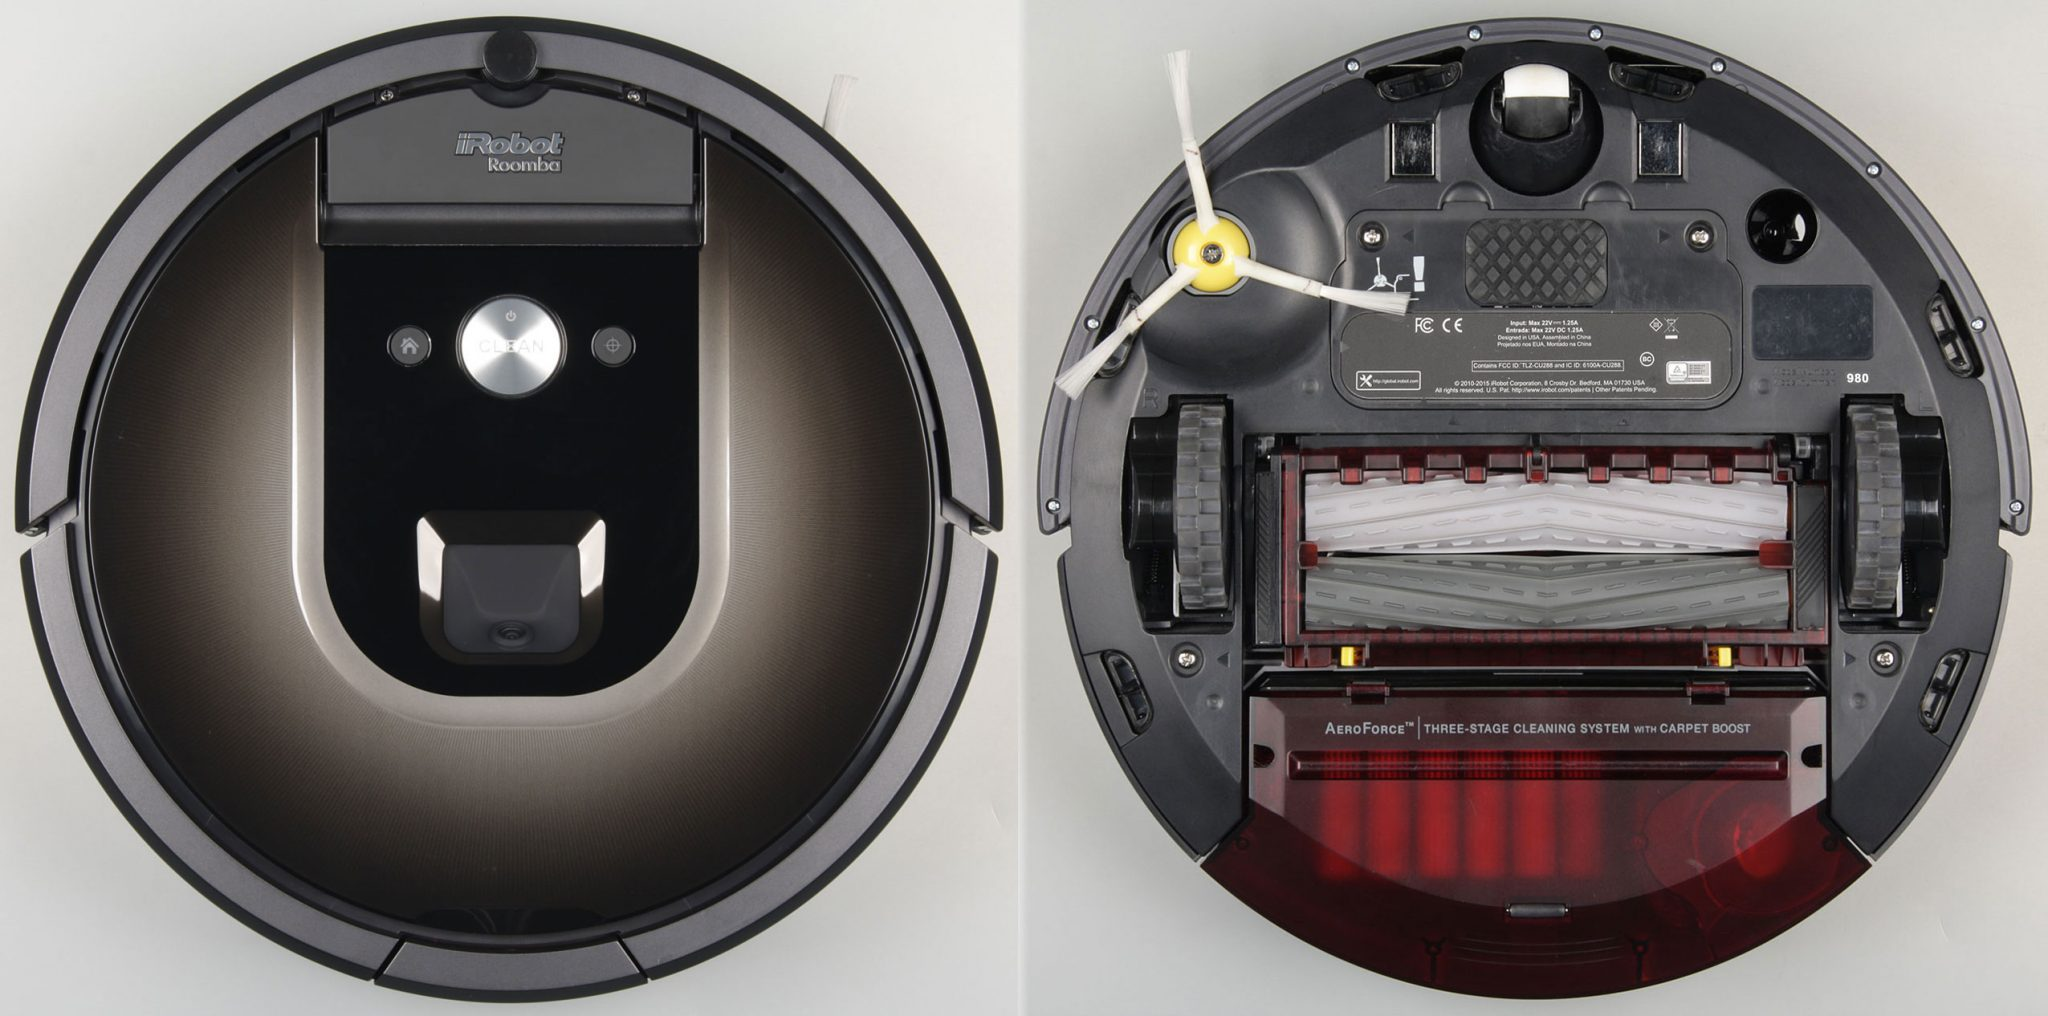 iRobot Roomba 980 top and bottom